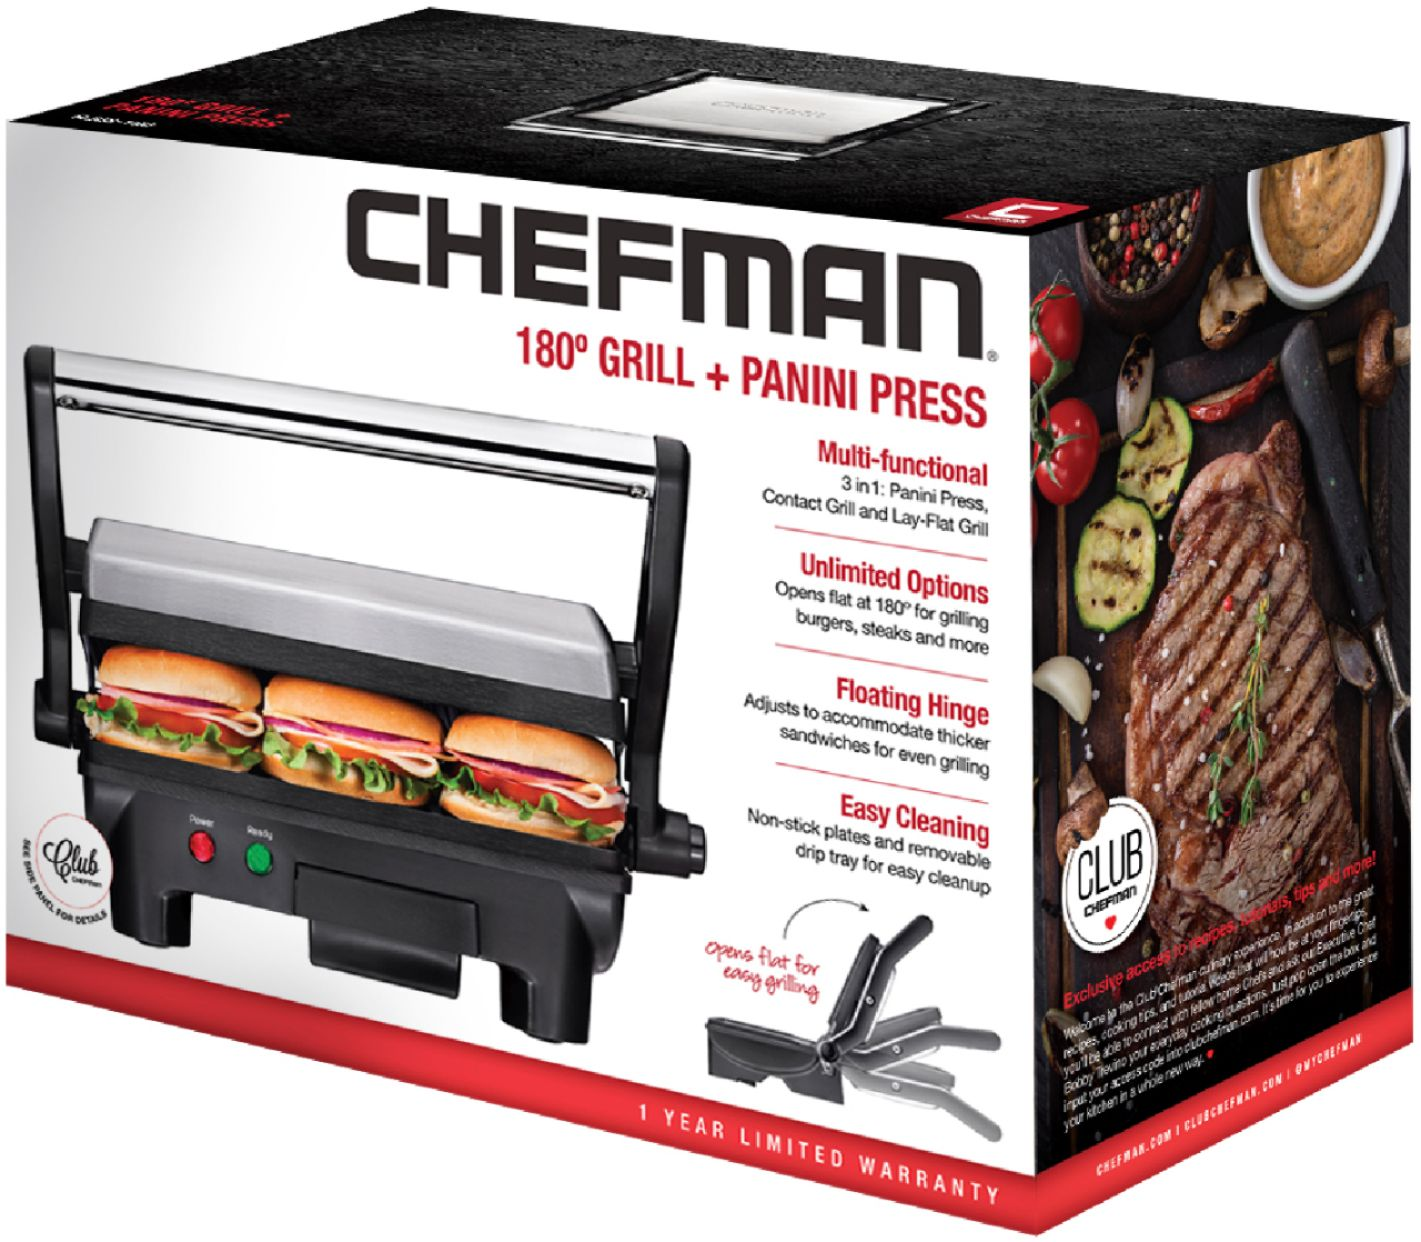 Grille Panini Chefman Grill Panini Press Stainless Steel